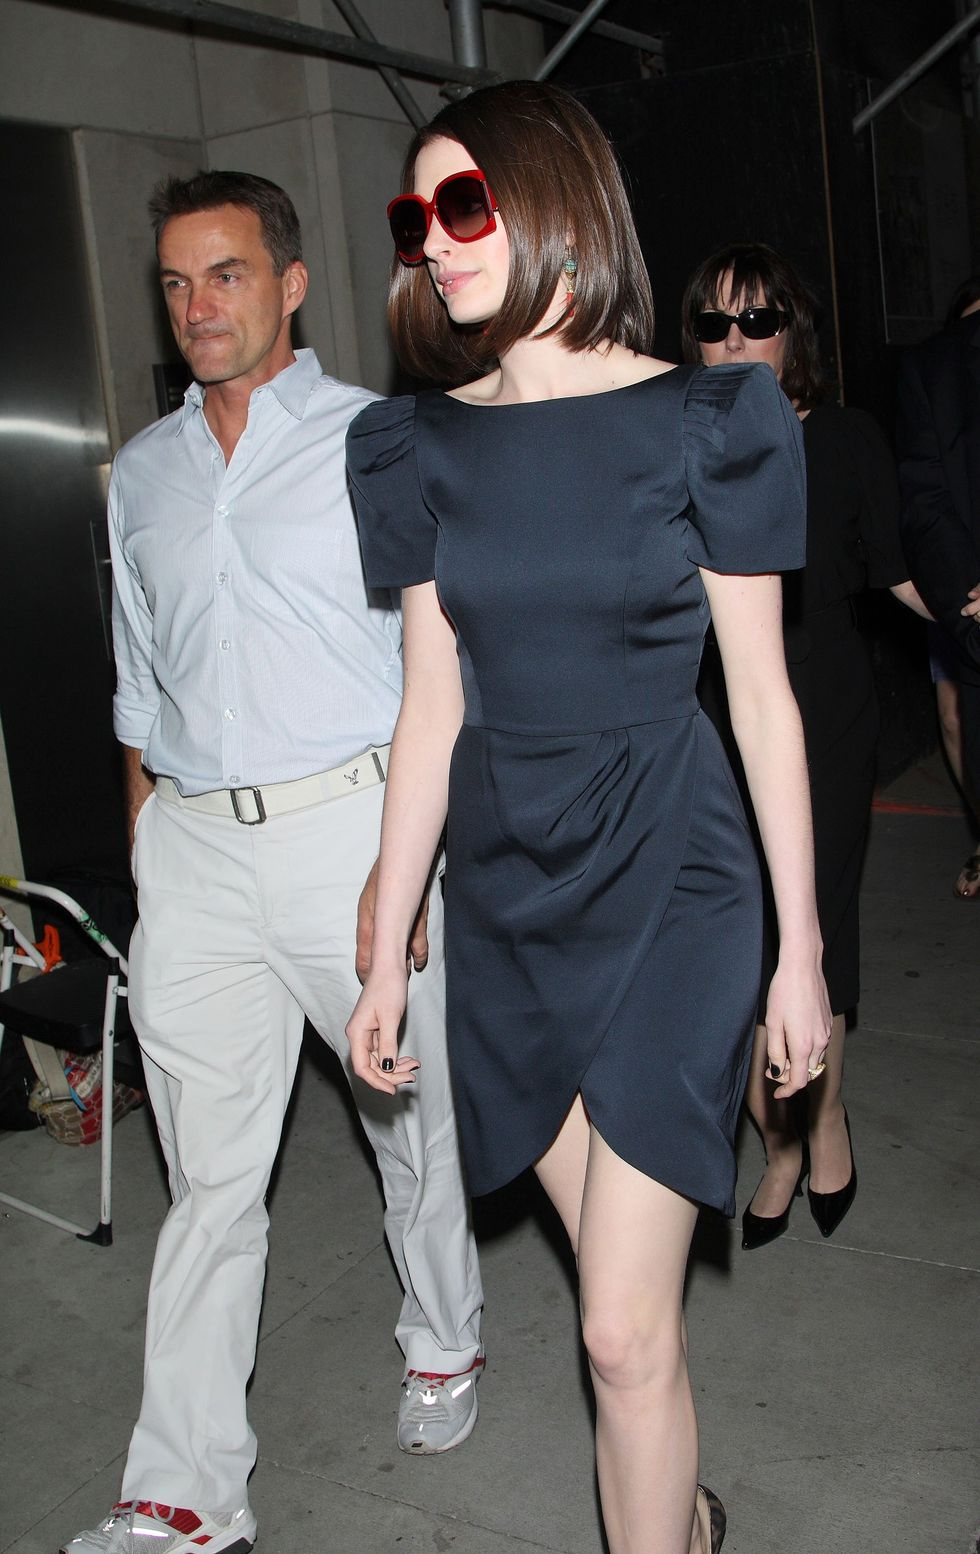 anne-hathaway-at-a-secret-screening-of-get-smart-in-new-york-01